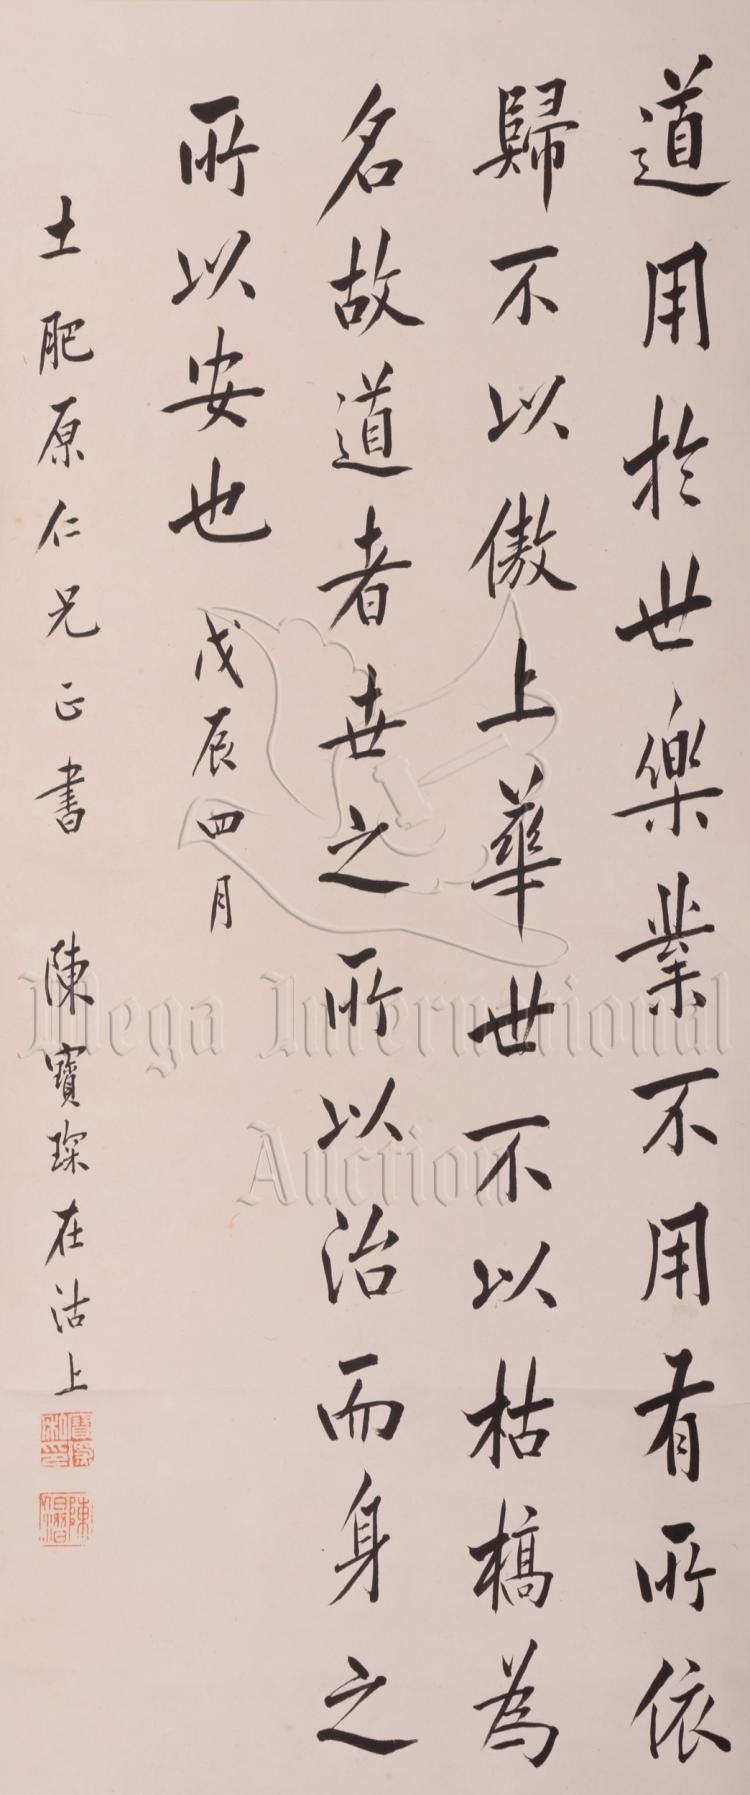 CHEN BAOCHEN: INK ON PAPER CALLIGRAPHY SCROLL